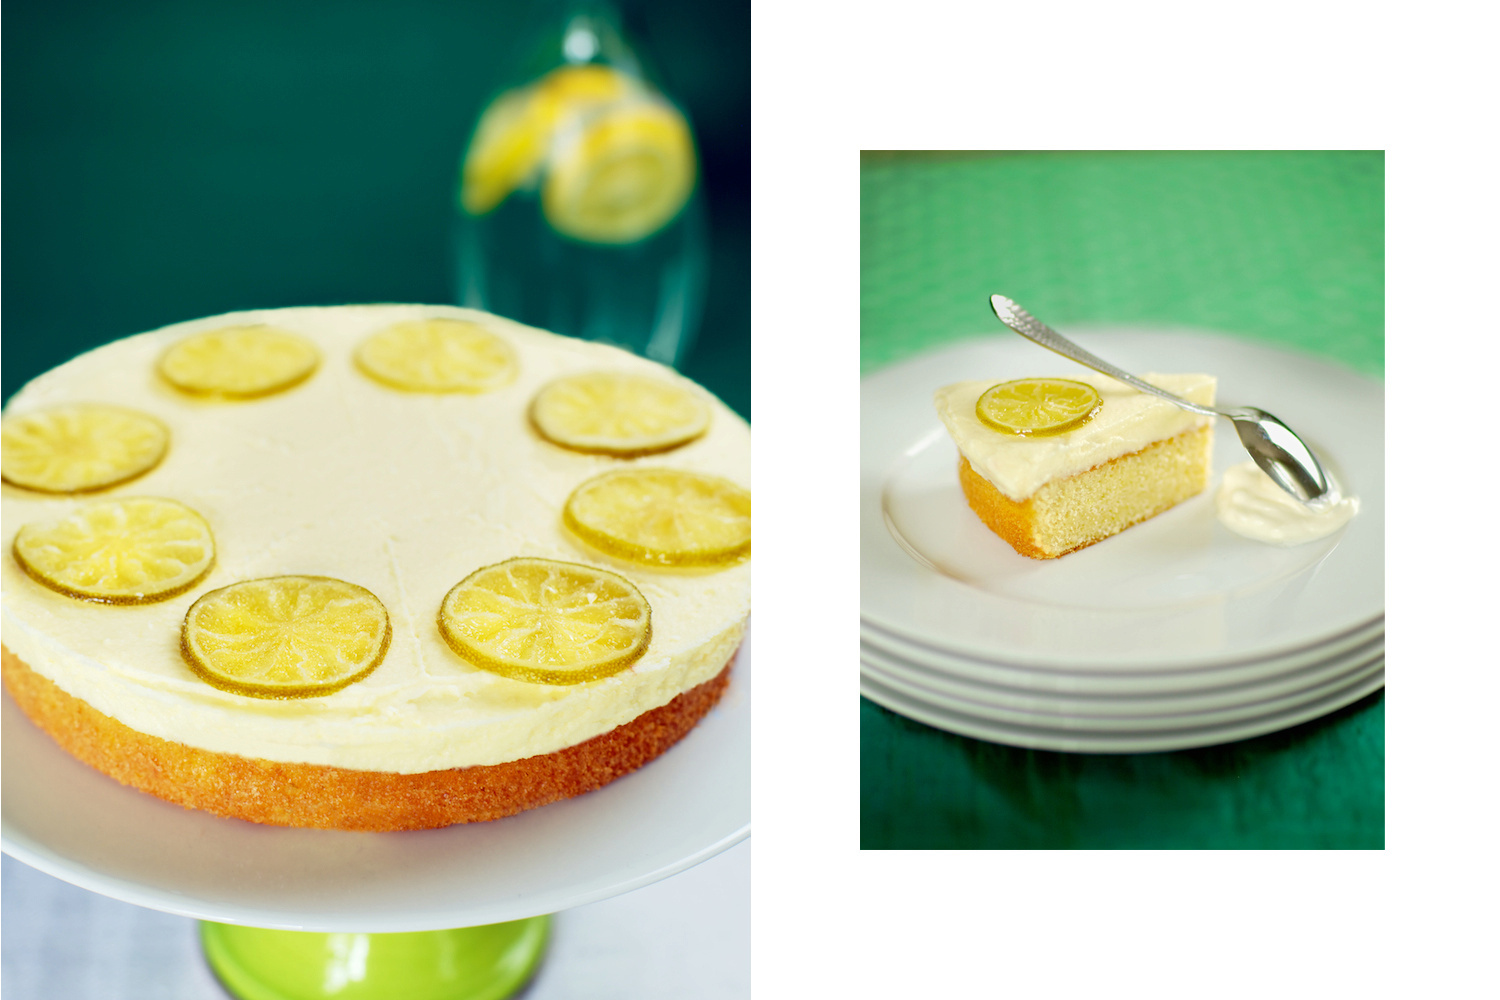 duo_lemonpie_piece.jpg